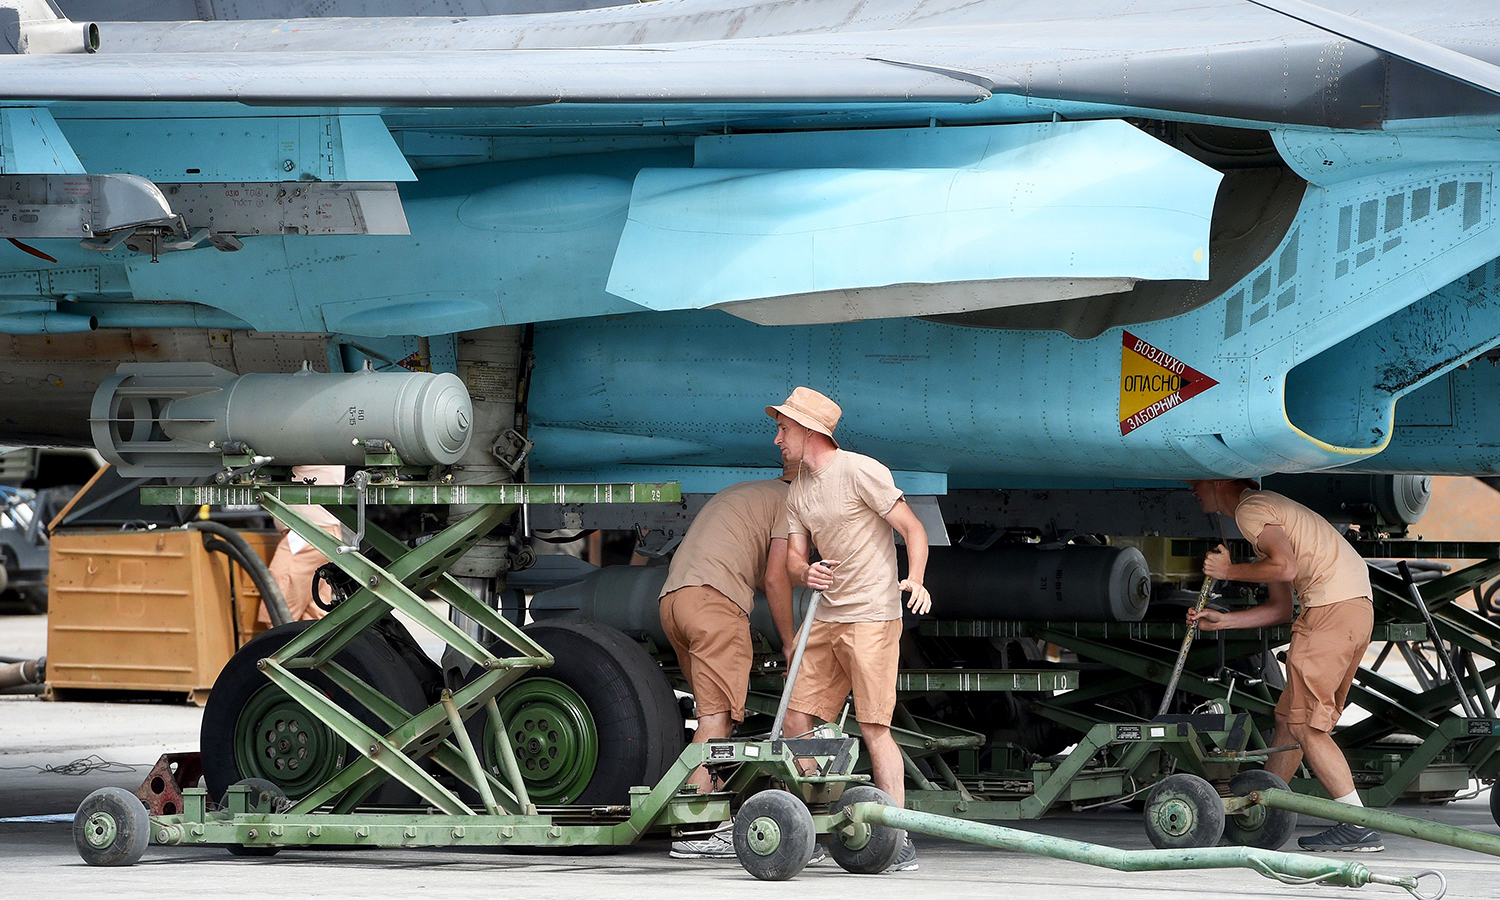 Russian servicemen attach a bomb on an SU-34 fighter jet before a mission from the Russian Hmeimim military base in Latakia. -AFP